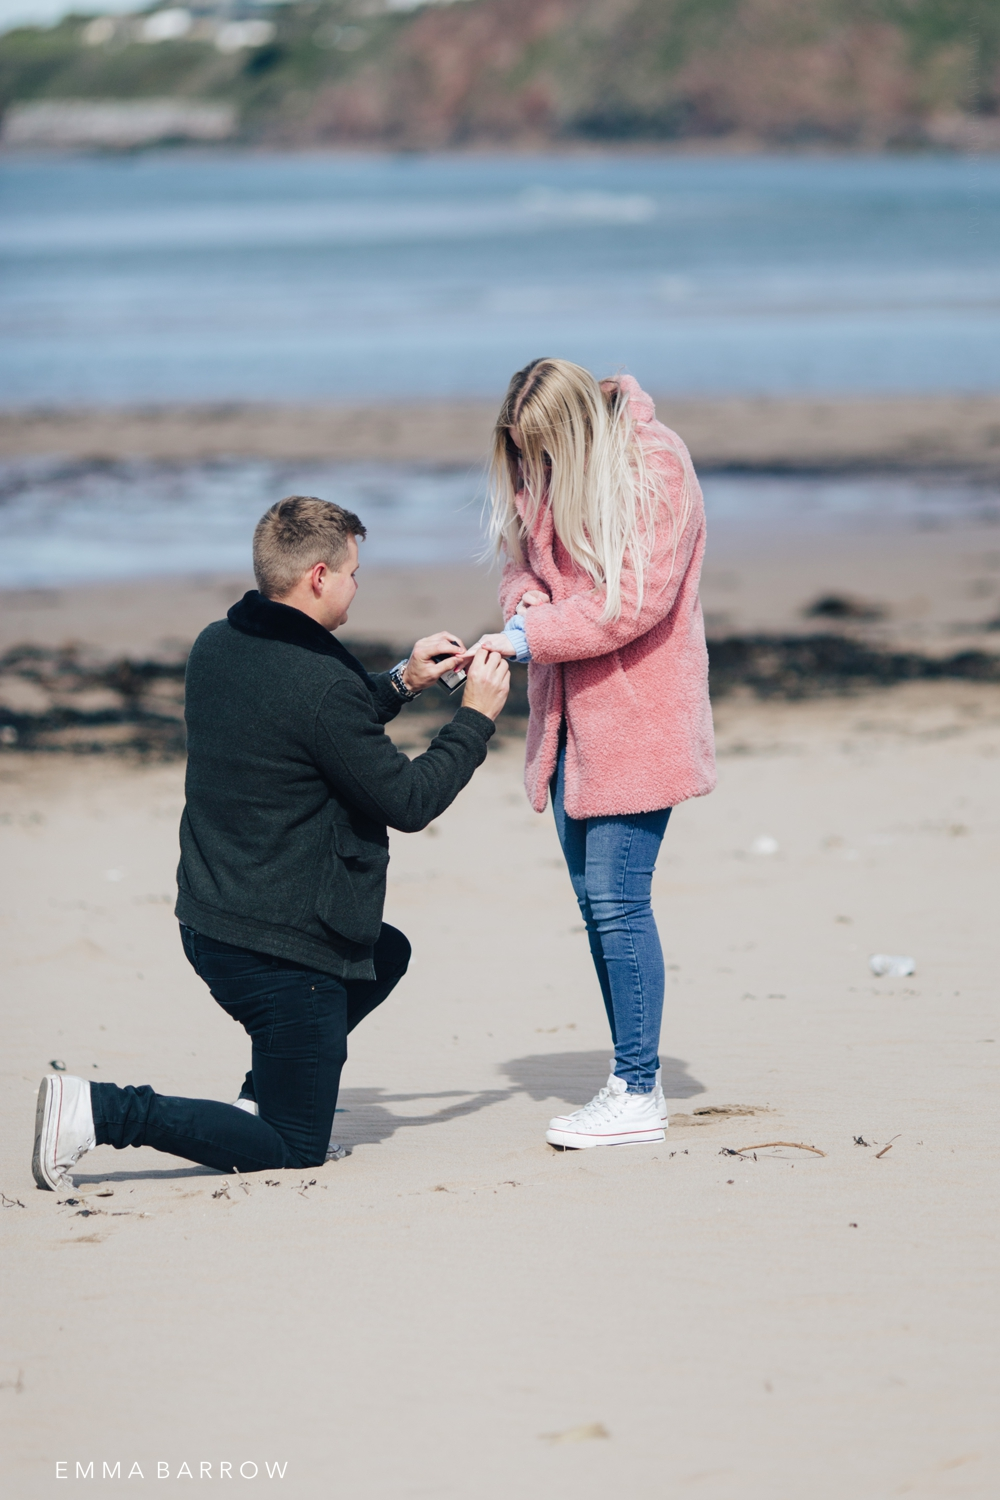 emmabarrow_bencarly_proposal-15.jpg